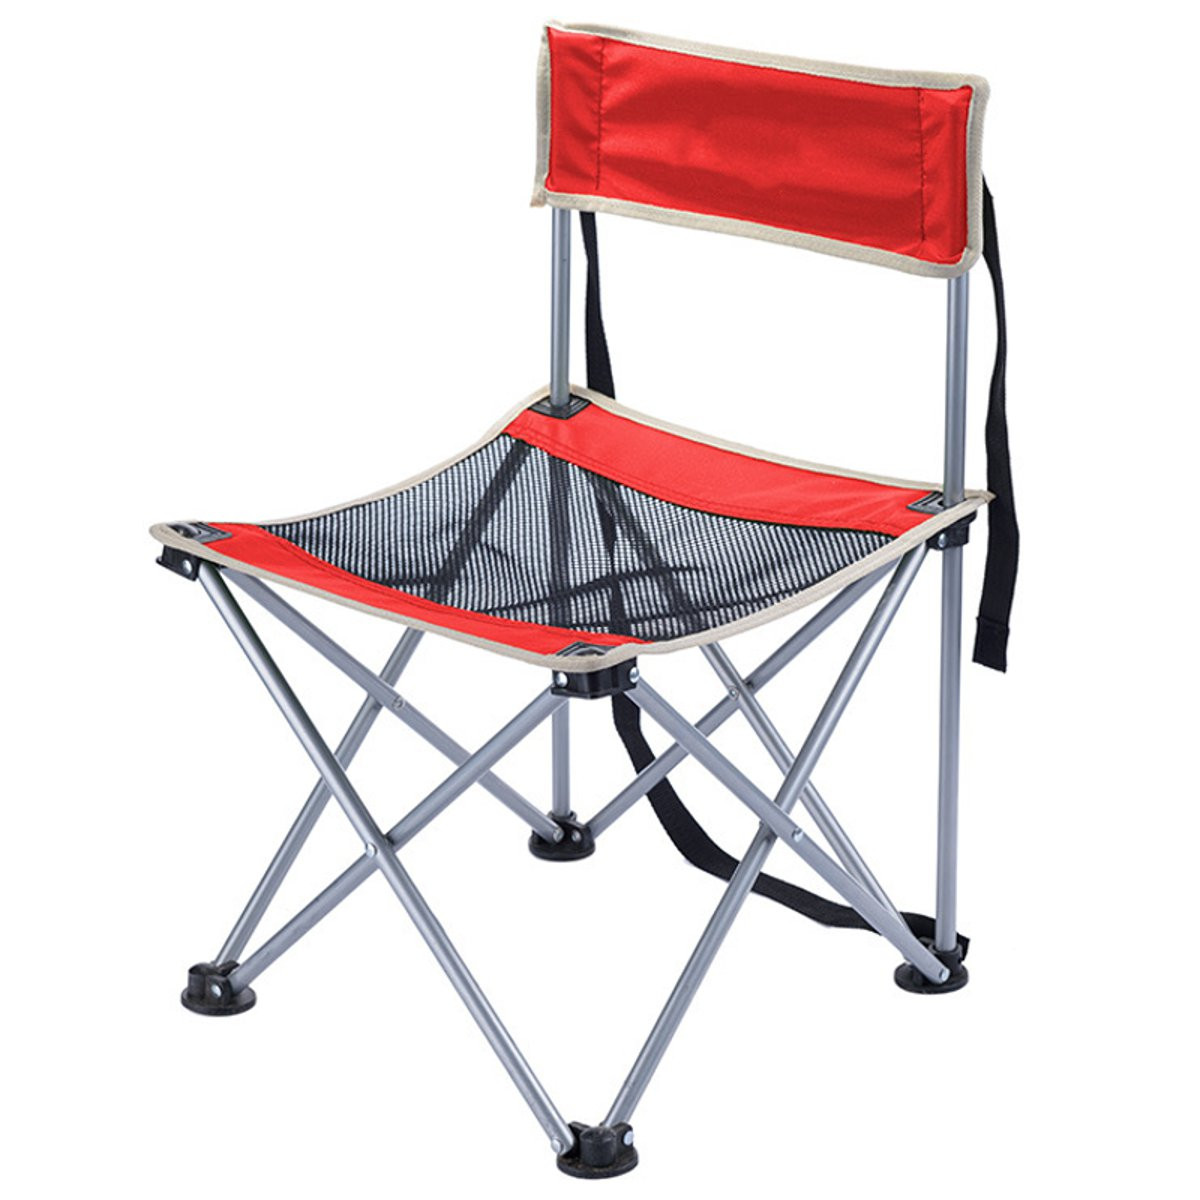 Outdooors Camping Portable Folding Chair Light Weight F